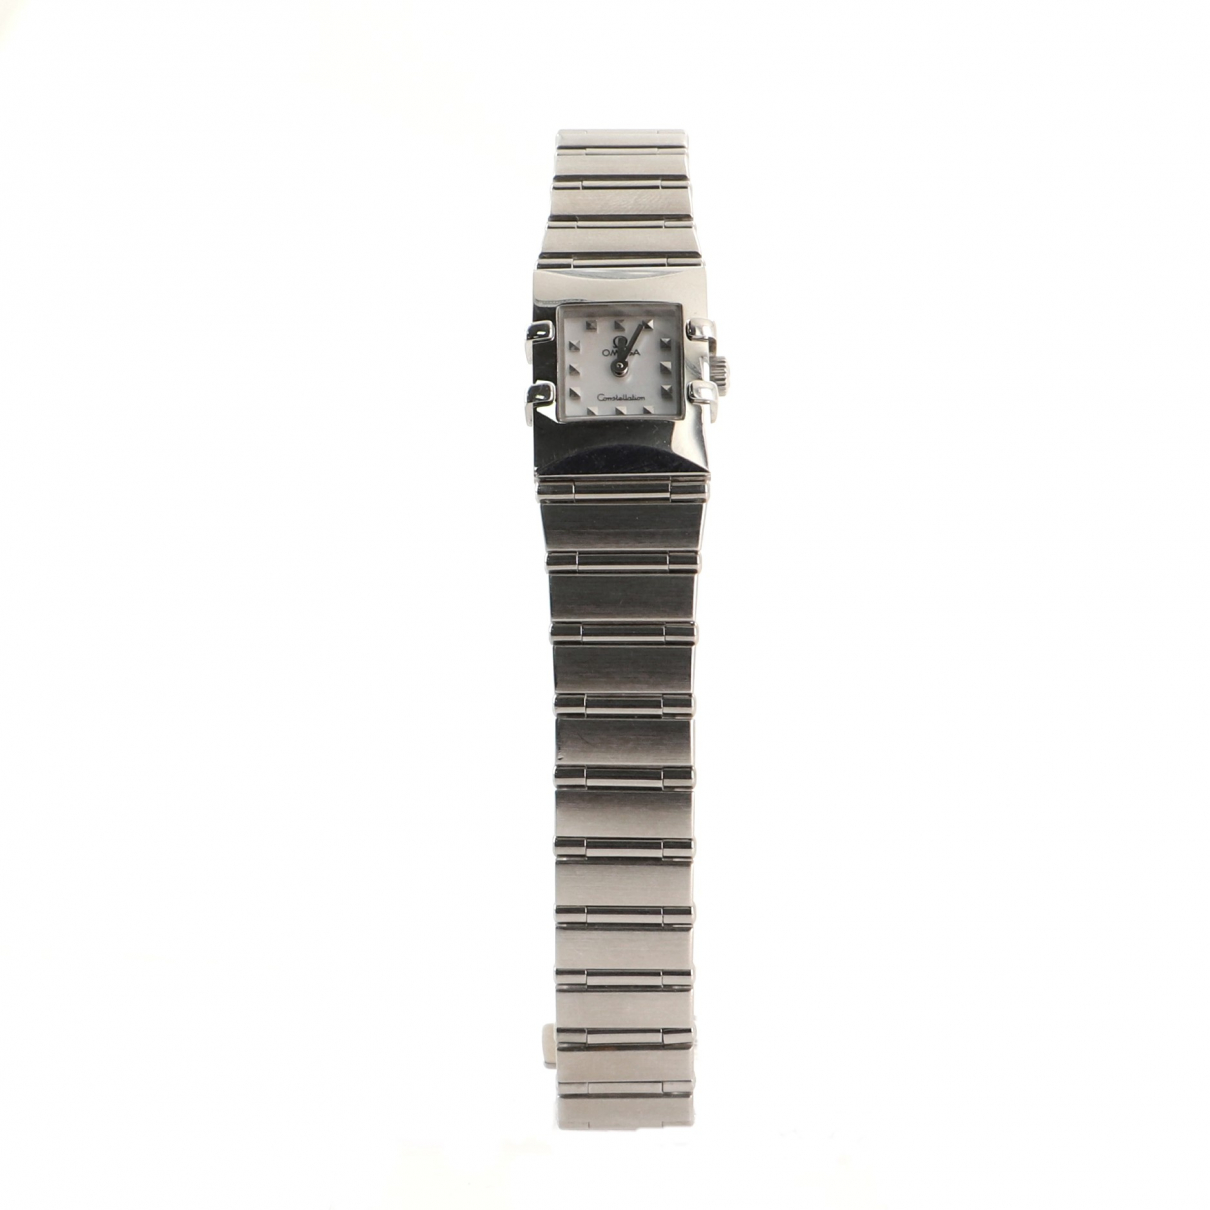 Omega Watches Canada, , Omega N Blue Steel Watches, 10770.17, Vestiaire Collective, vestiairecollective.com, Omega,